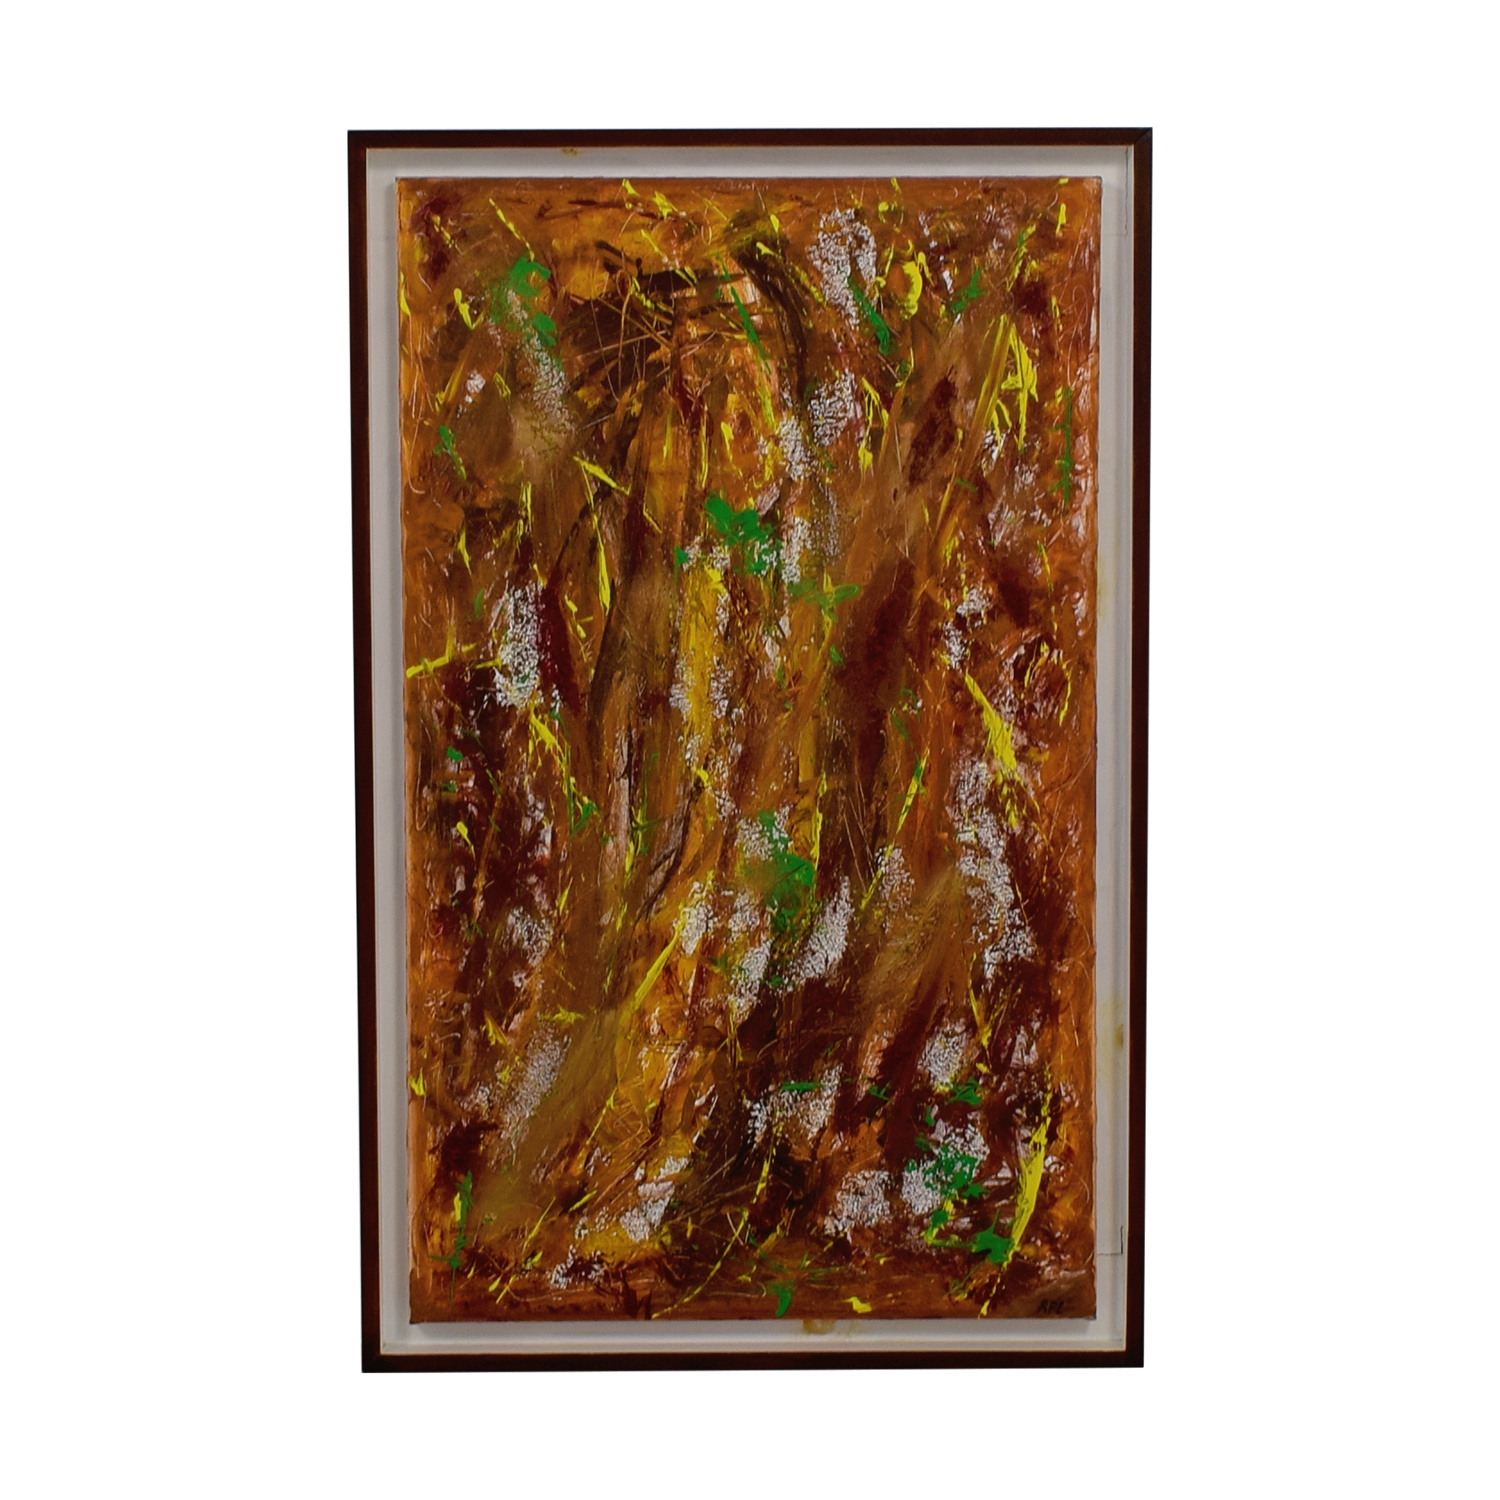 Artist R. Limmer Into the Woods by R. Limmer Framed Painting Decor